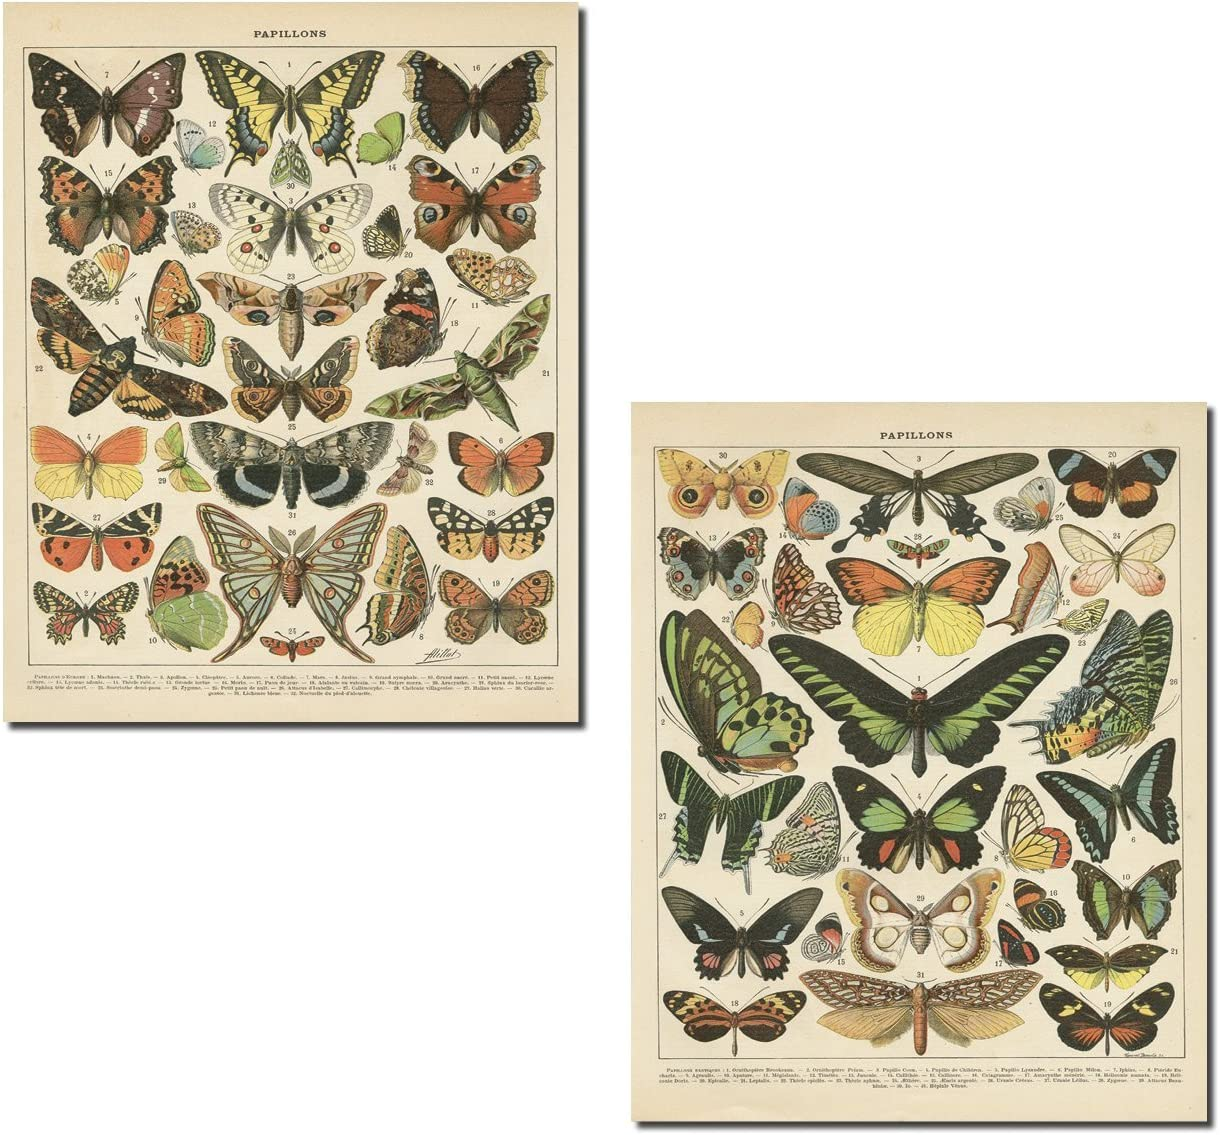 Gango Home Décor Popular Vintage French Types of Papillons Butterflies Set; Two 16x20in Fine Art Giclee Prints